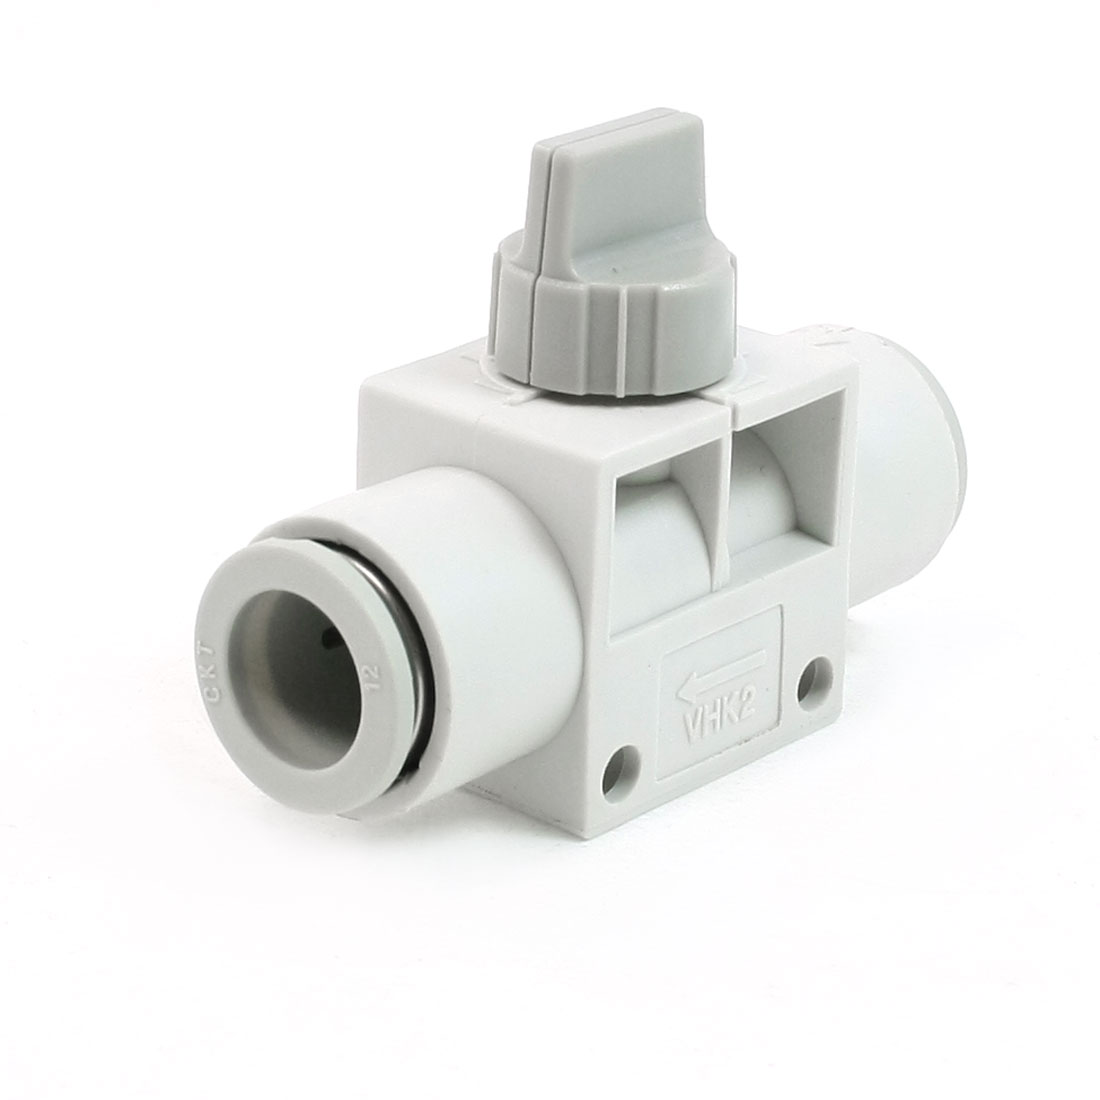 12mm to 12mm One Touch Fitting Pneumatic Quick Connector Hand Valve